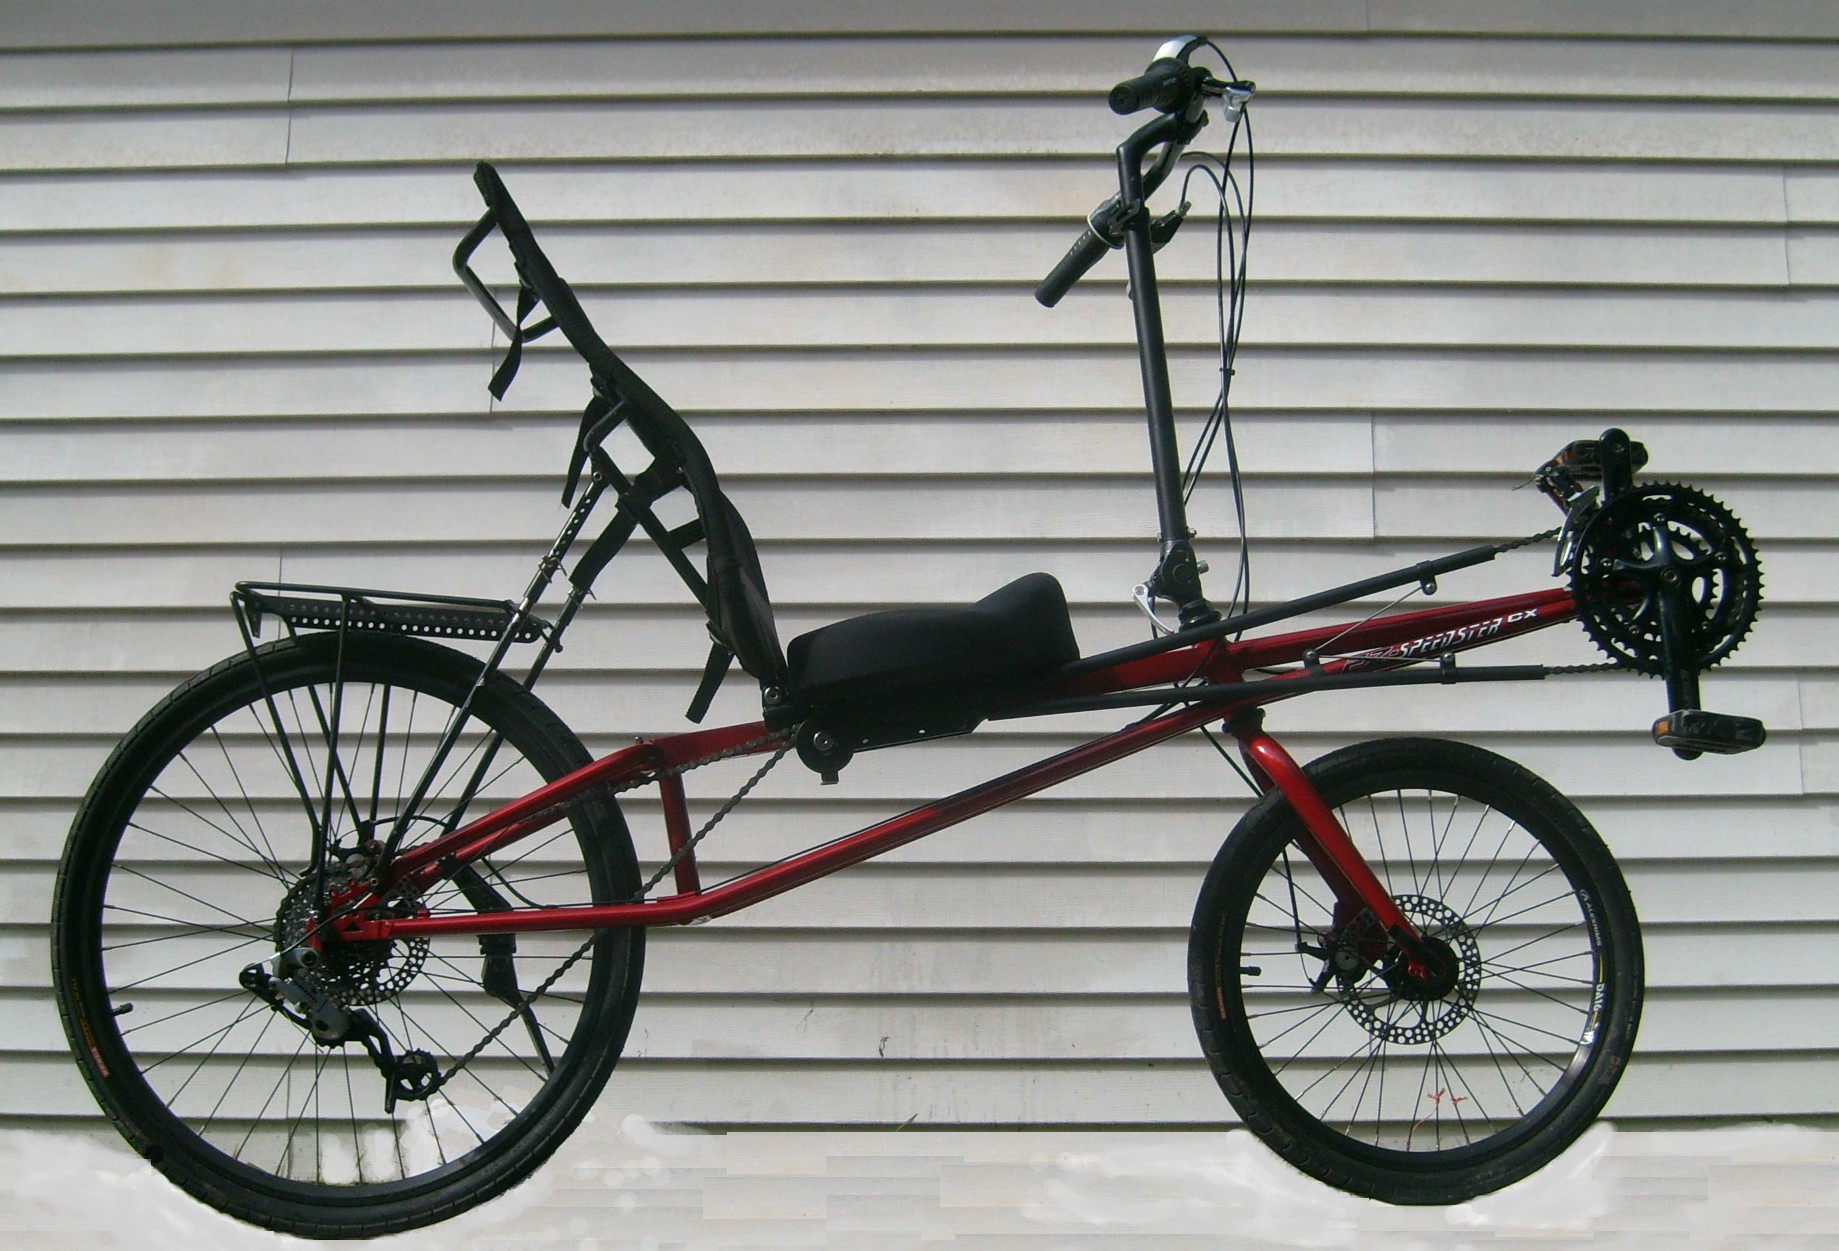 Craigslist Used Bikes For Sale Use Google alerts which sends